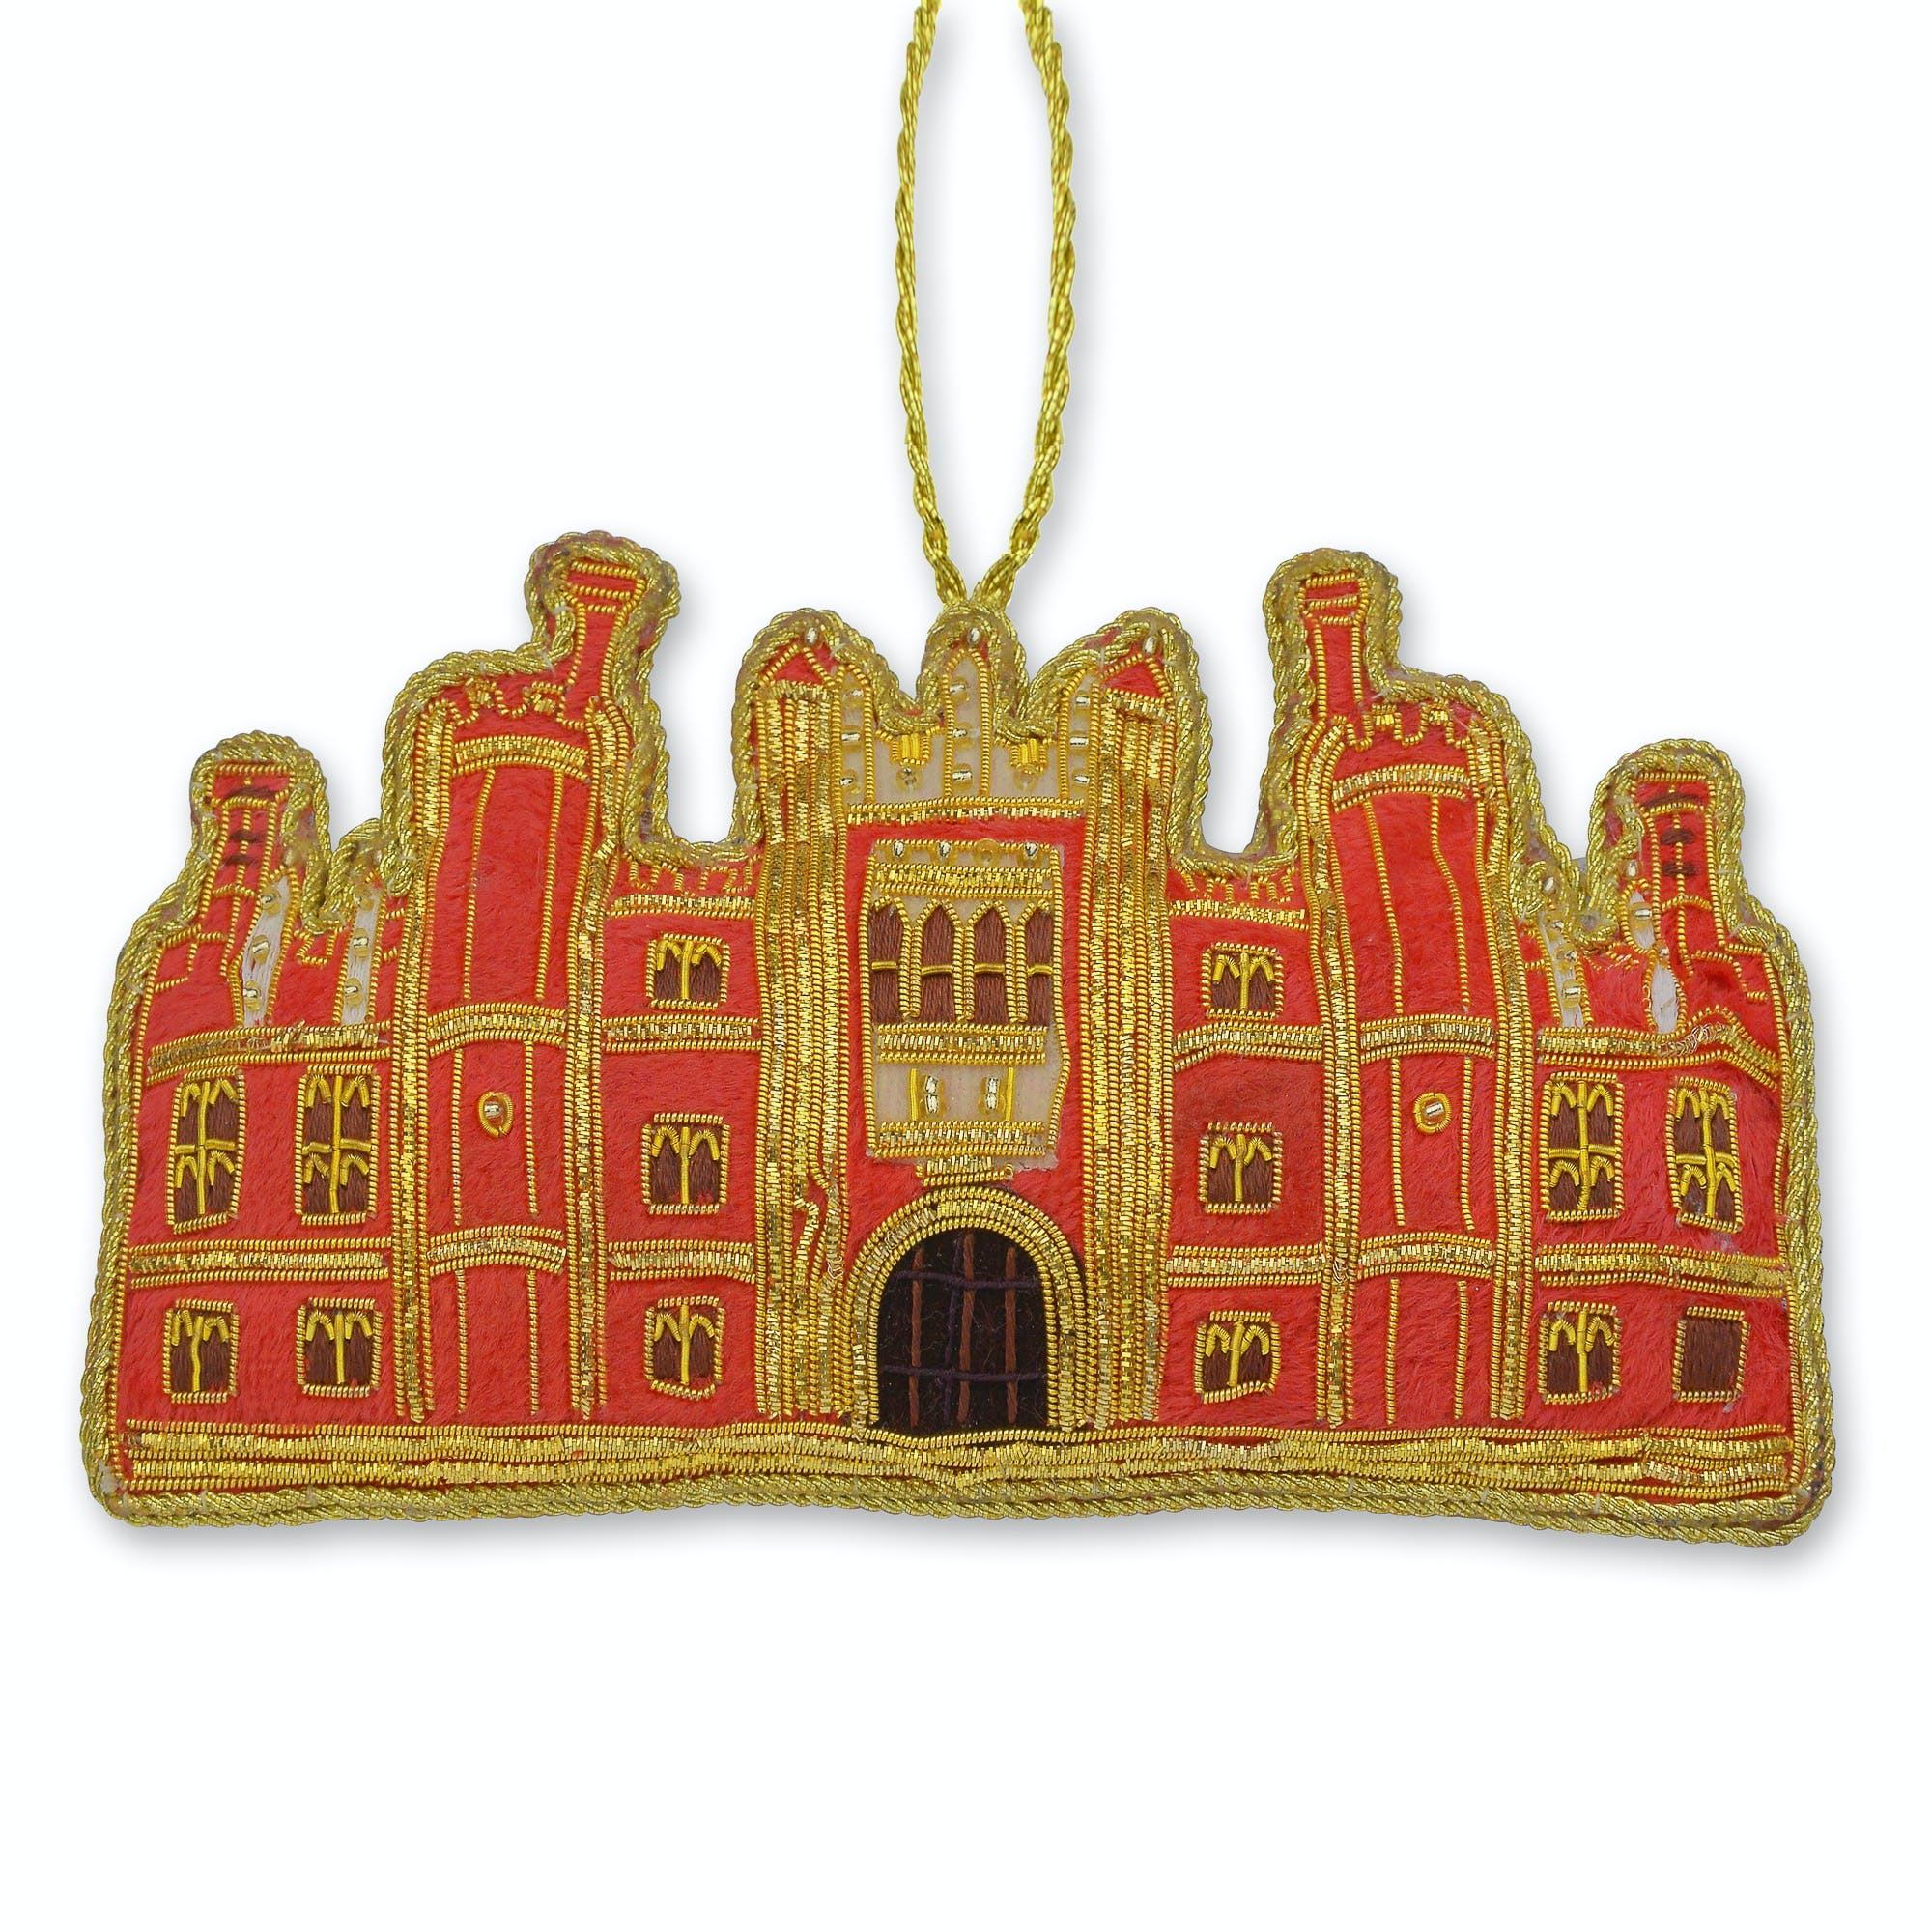 This Hampton Court Palace decoration showcases the beautiful architecture of the palace and makes a regal addition to any tree.